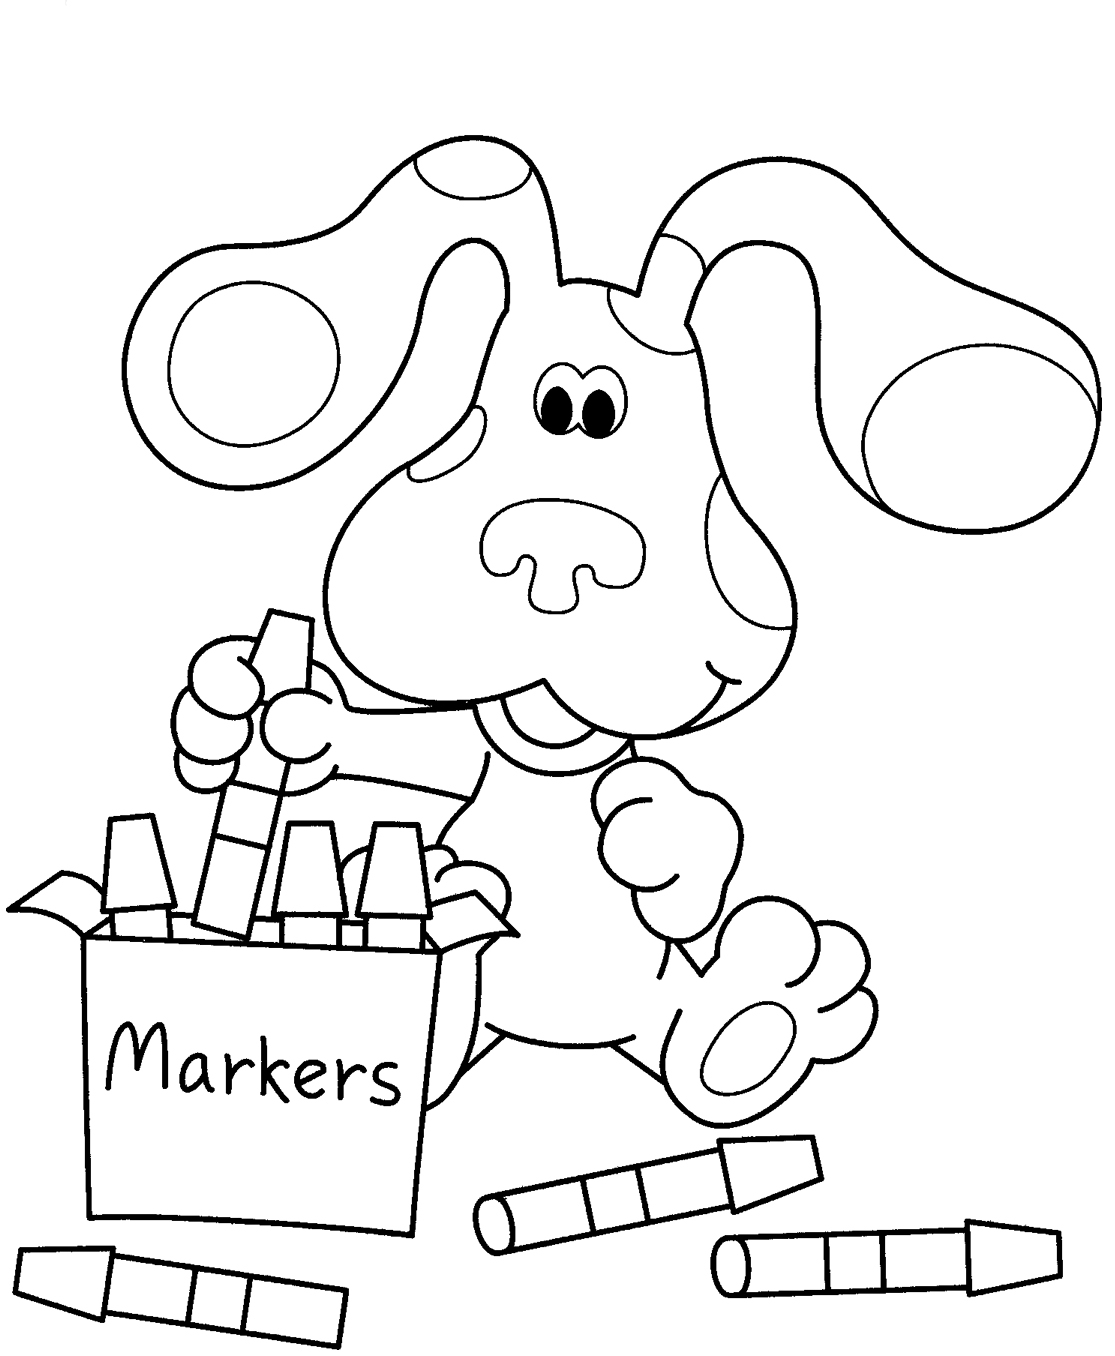 Nick Jr Coloring Pages 14 Coloring Kids Nickjr Coloring Pages